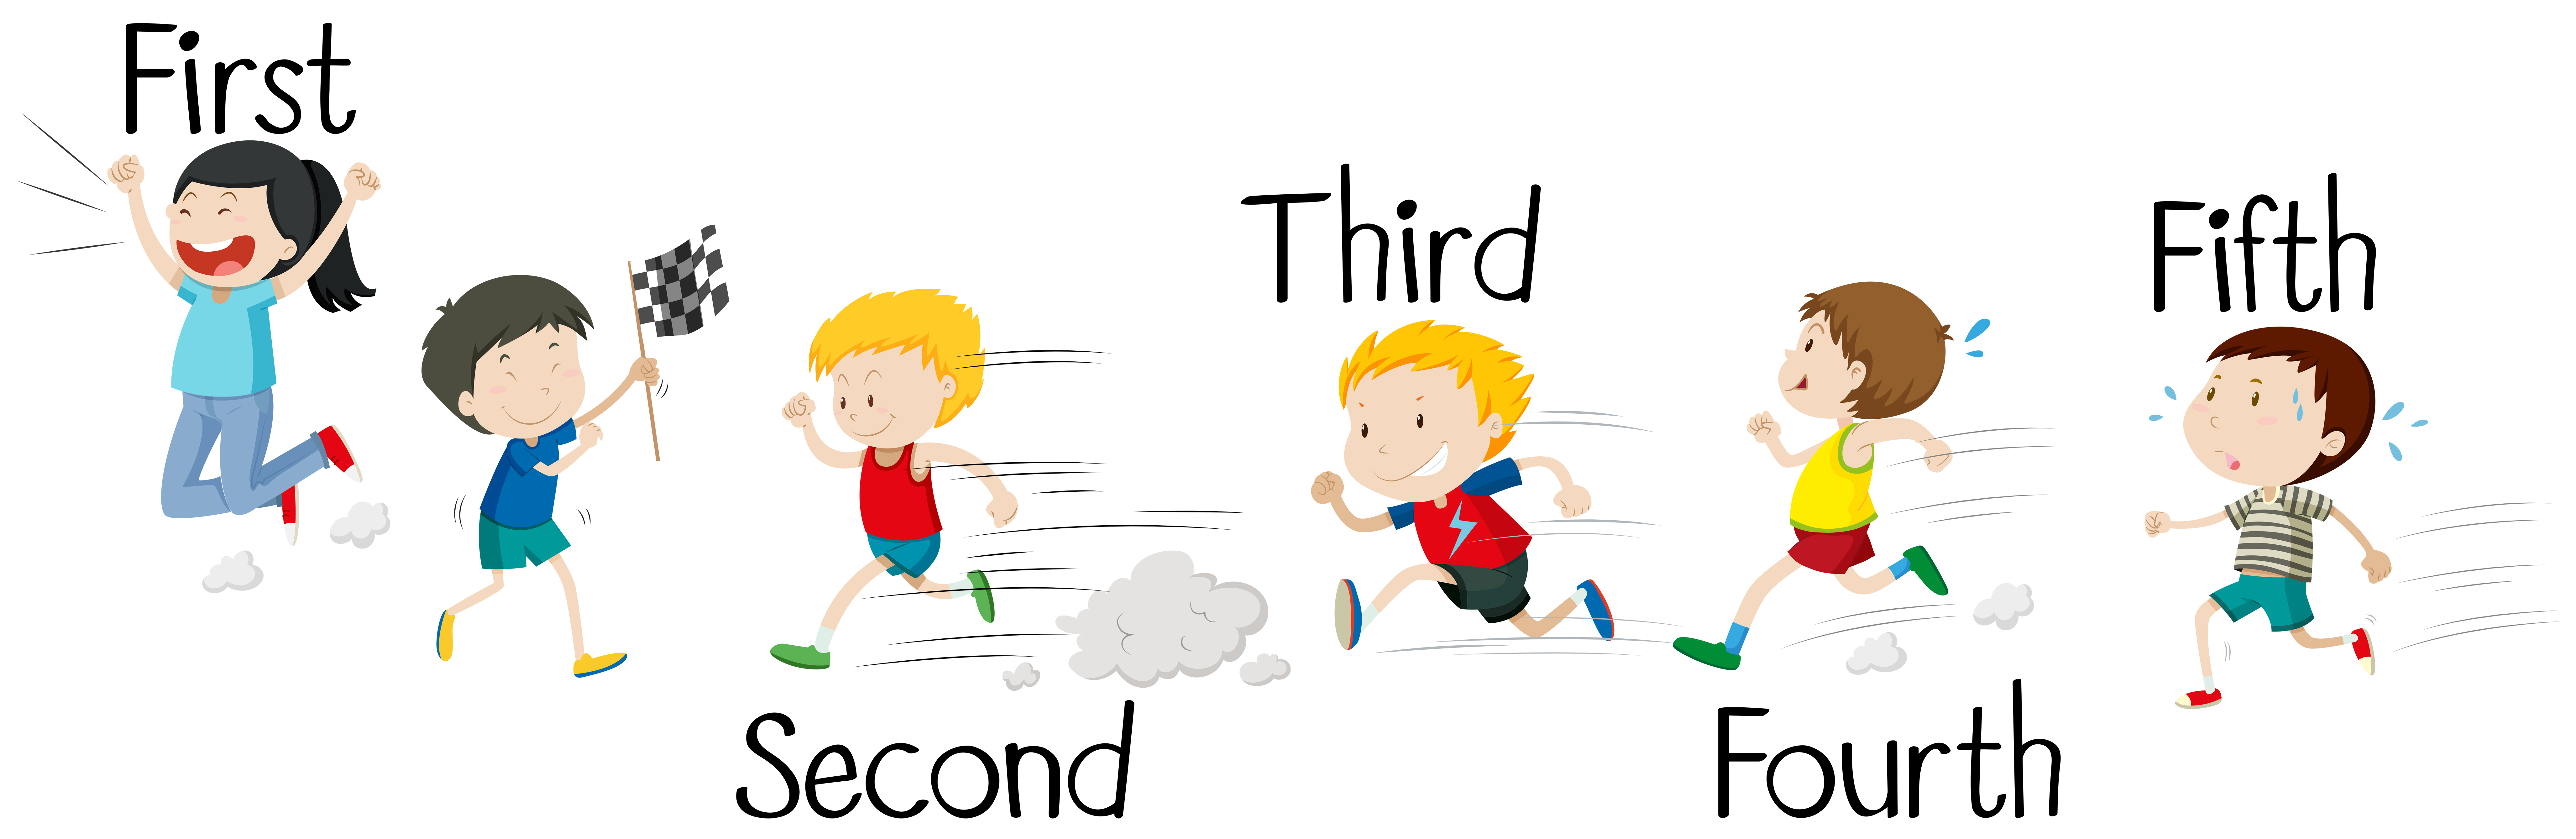 Kids Racing Free Vector Art